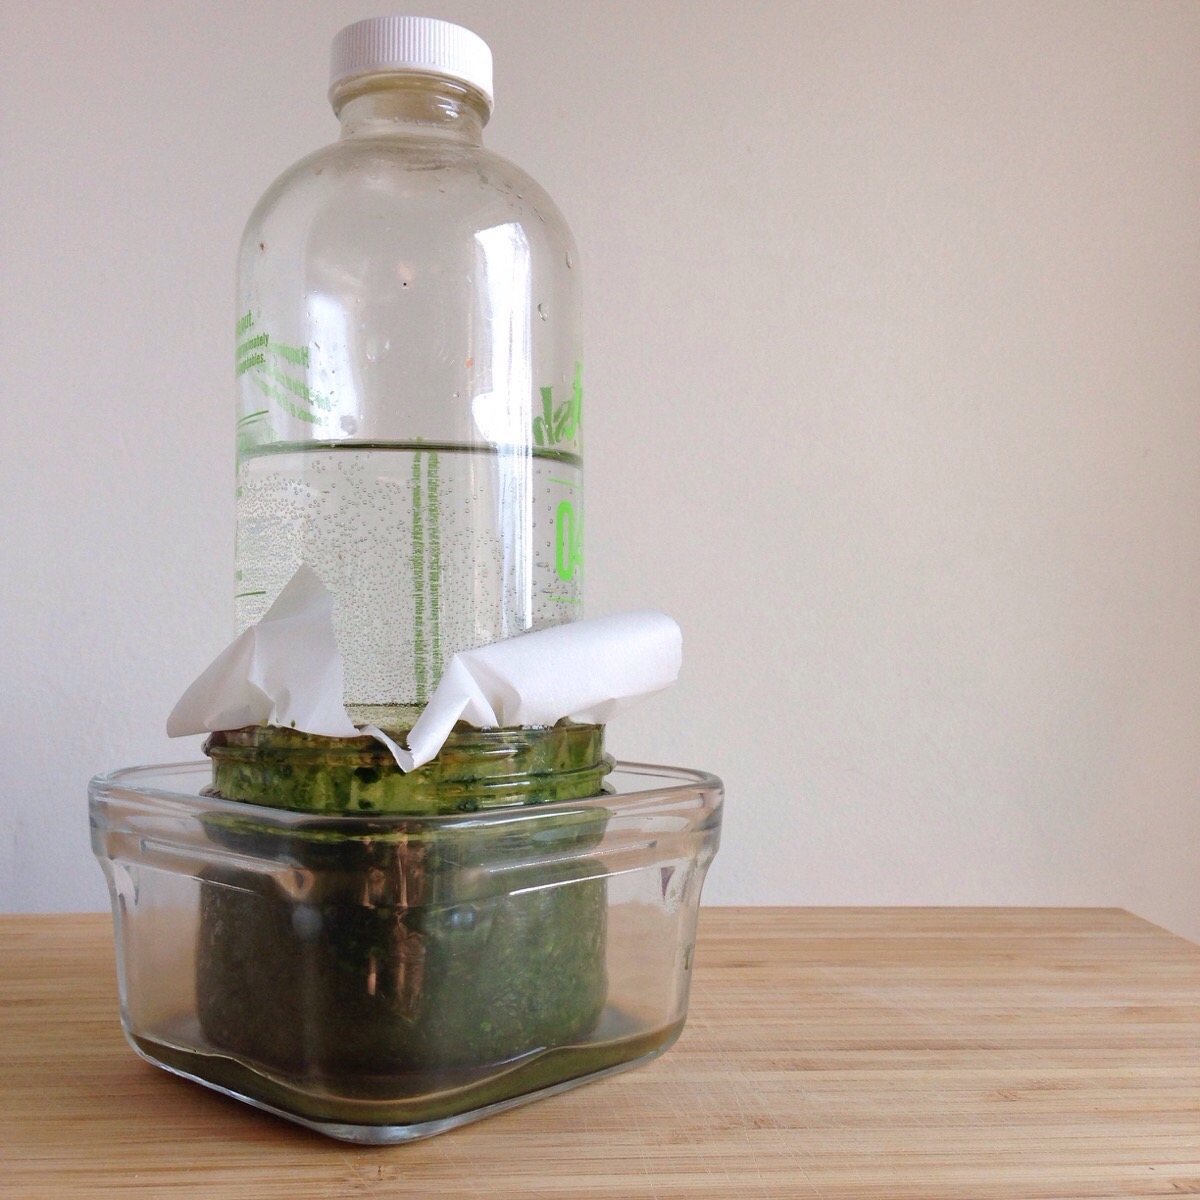 Place a weight on top to keep brine levels above herbs